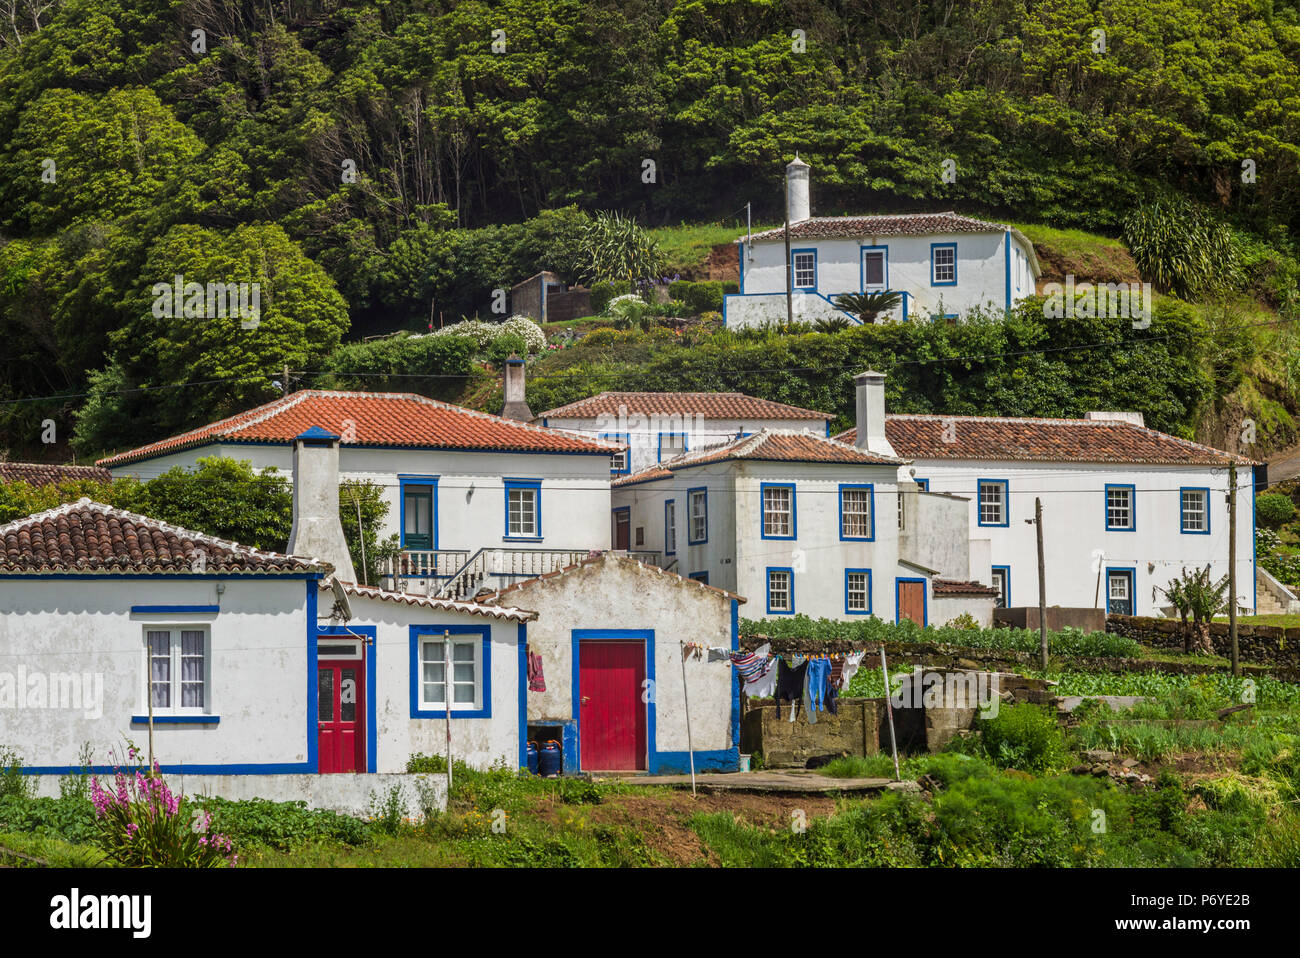 Le Portugal, Açores, l'île de Santa Maria, Santa Barbara Photo Stock